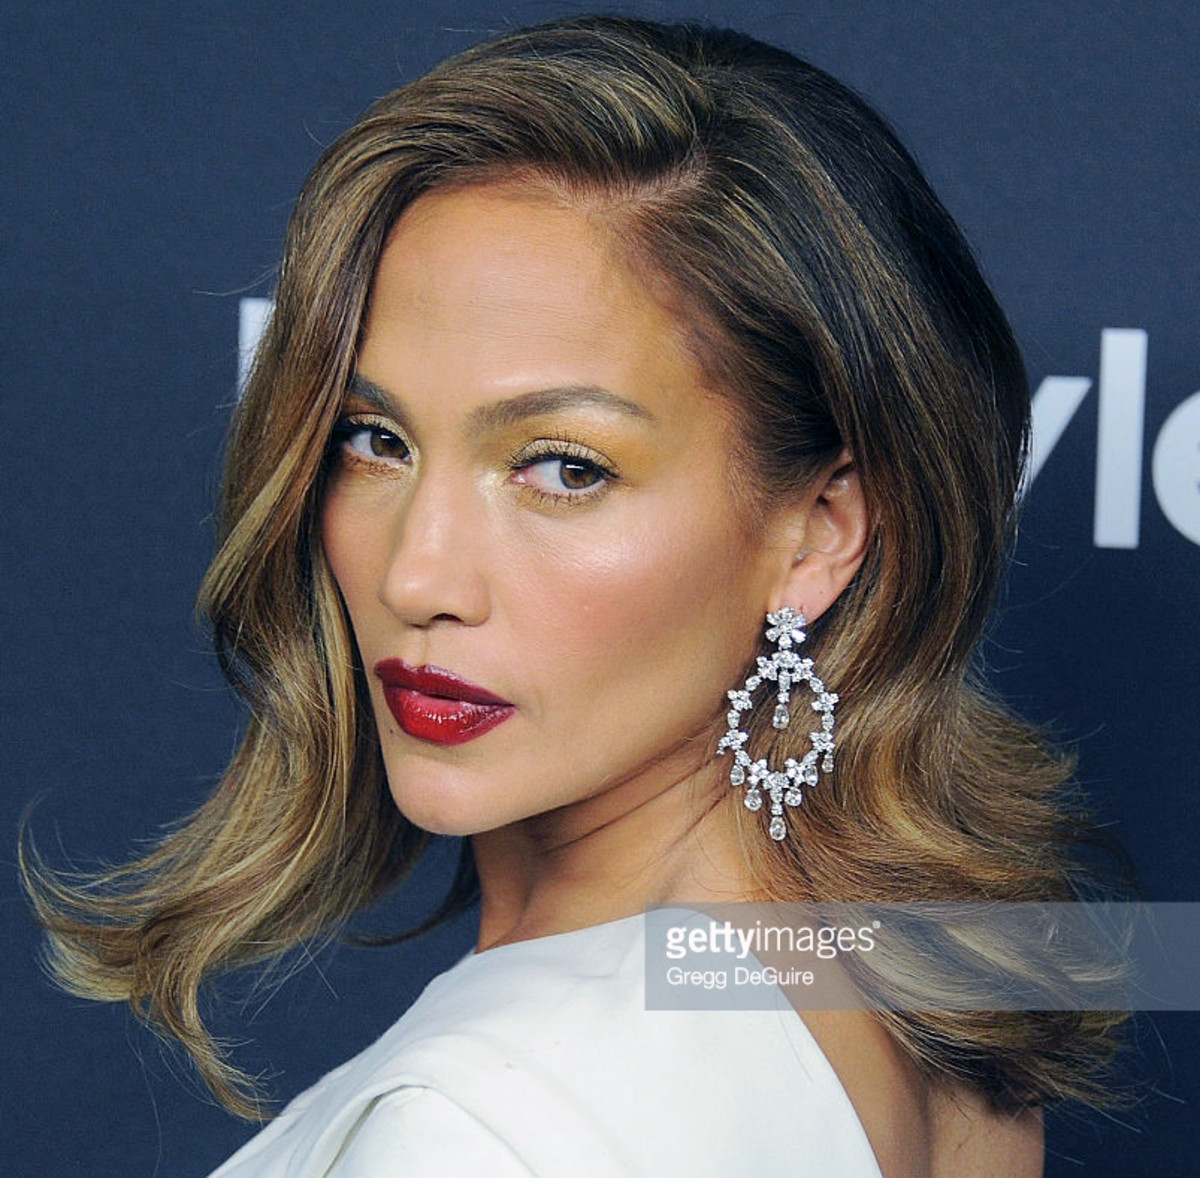 Jennifer Lopez on the red carpet for the 2016 Golden Globes after-party – fave shot.